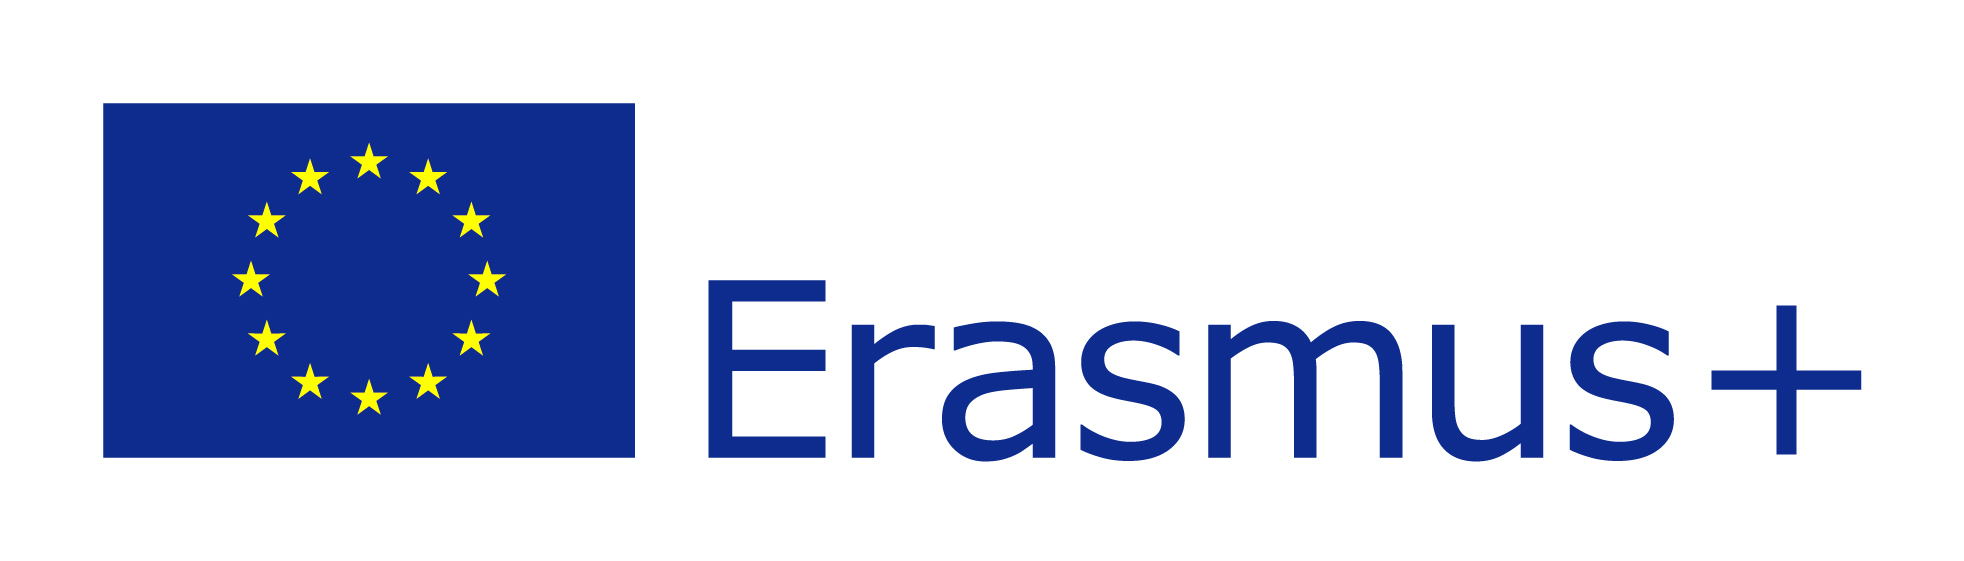 ERASMUS plus logo EU flag